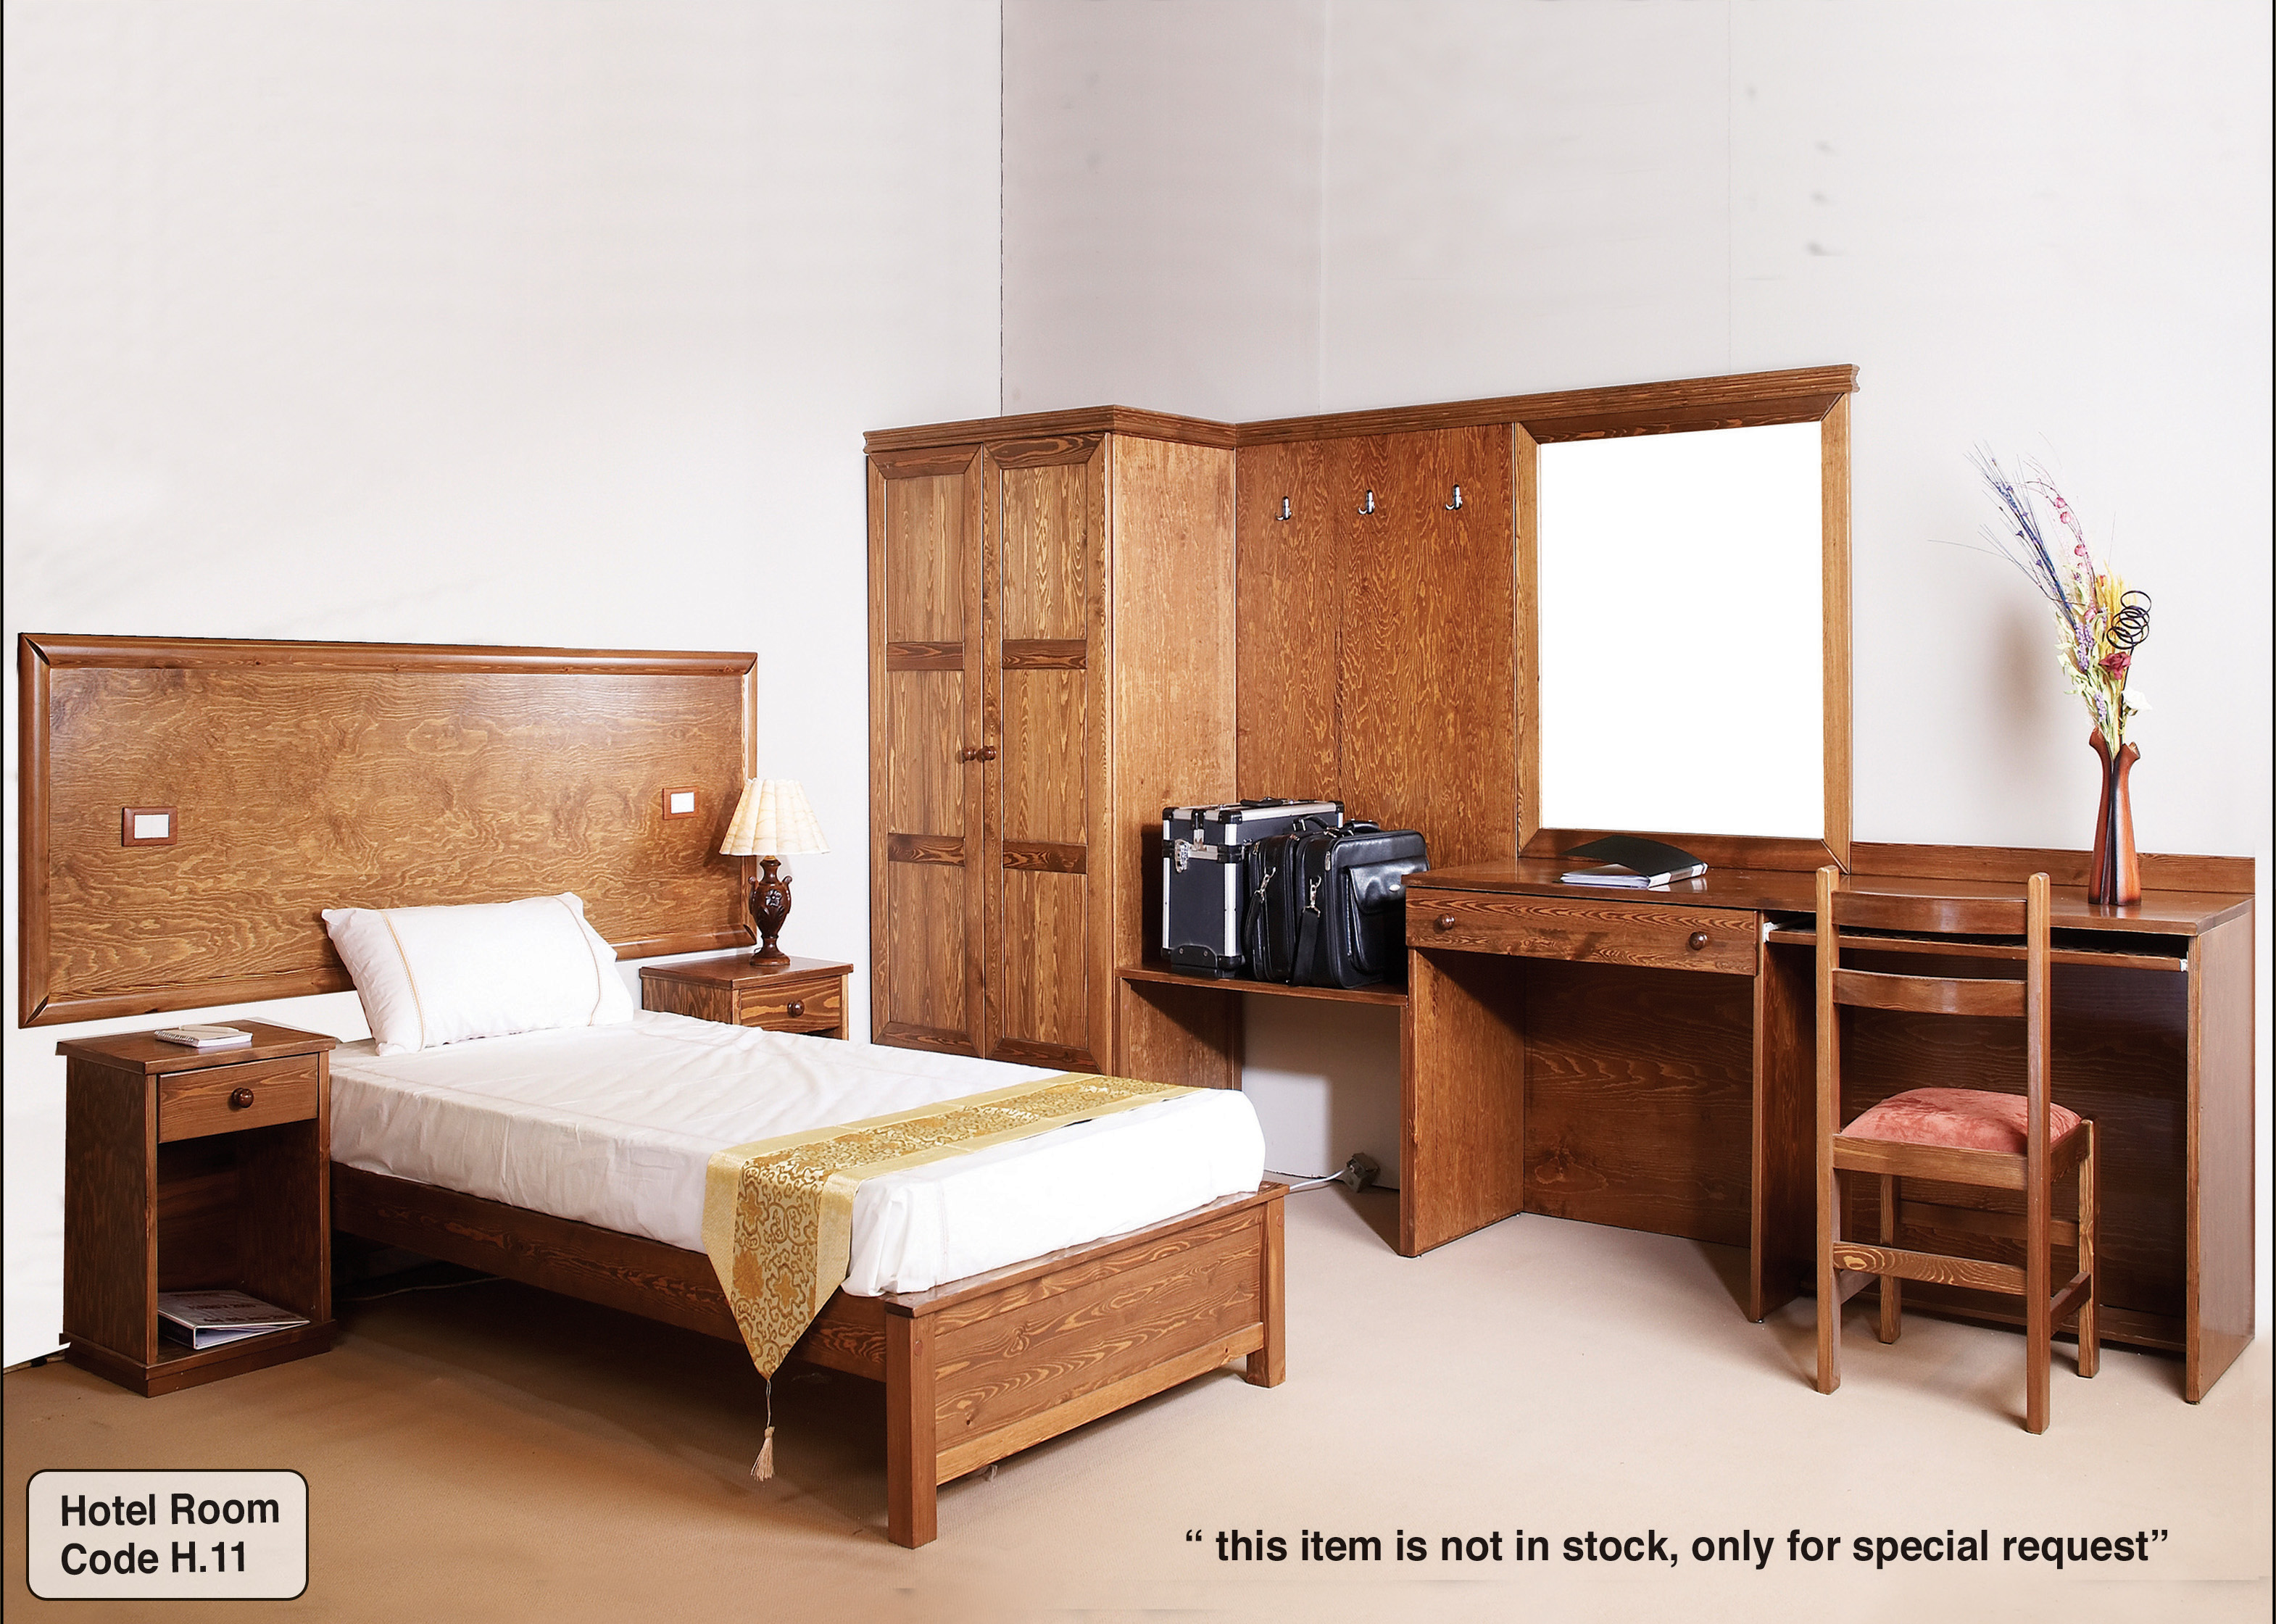 Hotel Rooms Hotels Furniture Home Furniture Resorts